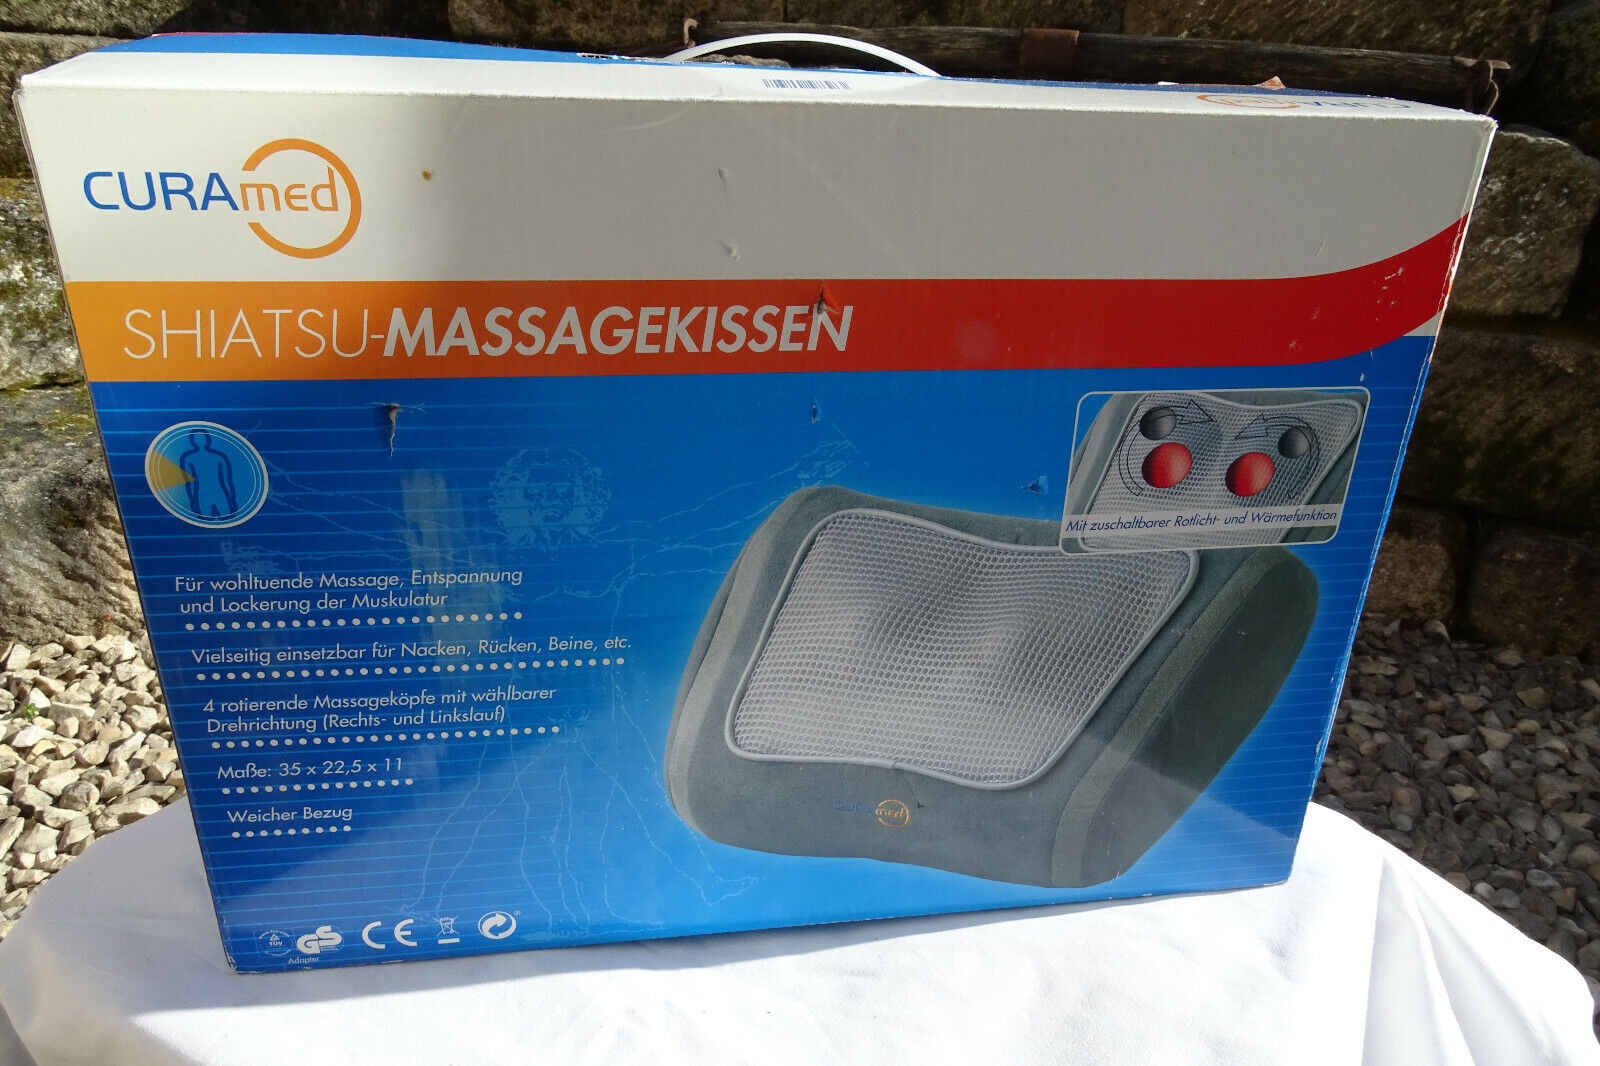 CURAmed SHIATSU-MASSAGEKISSEN